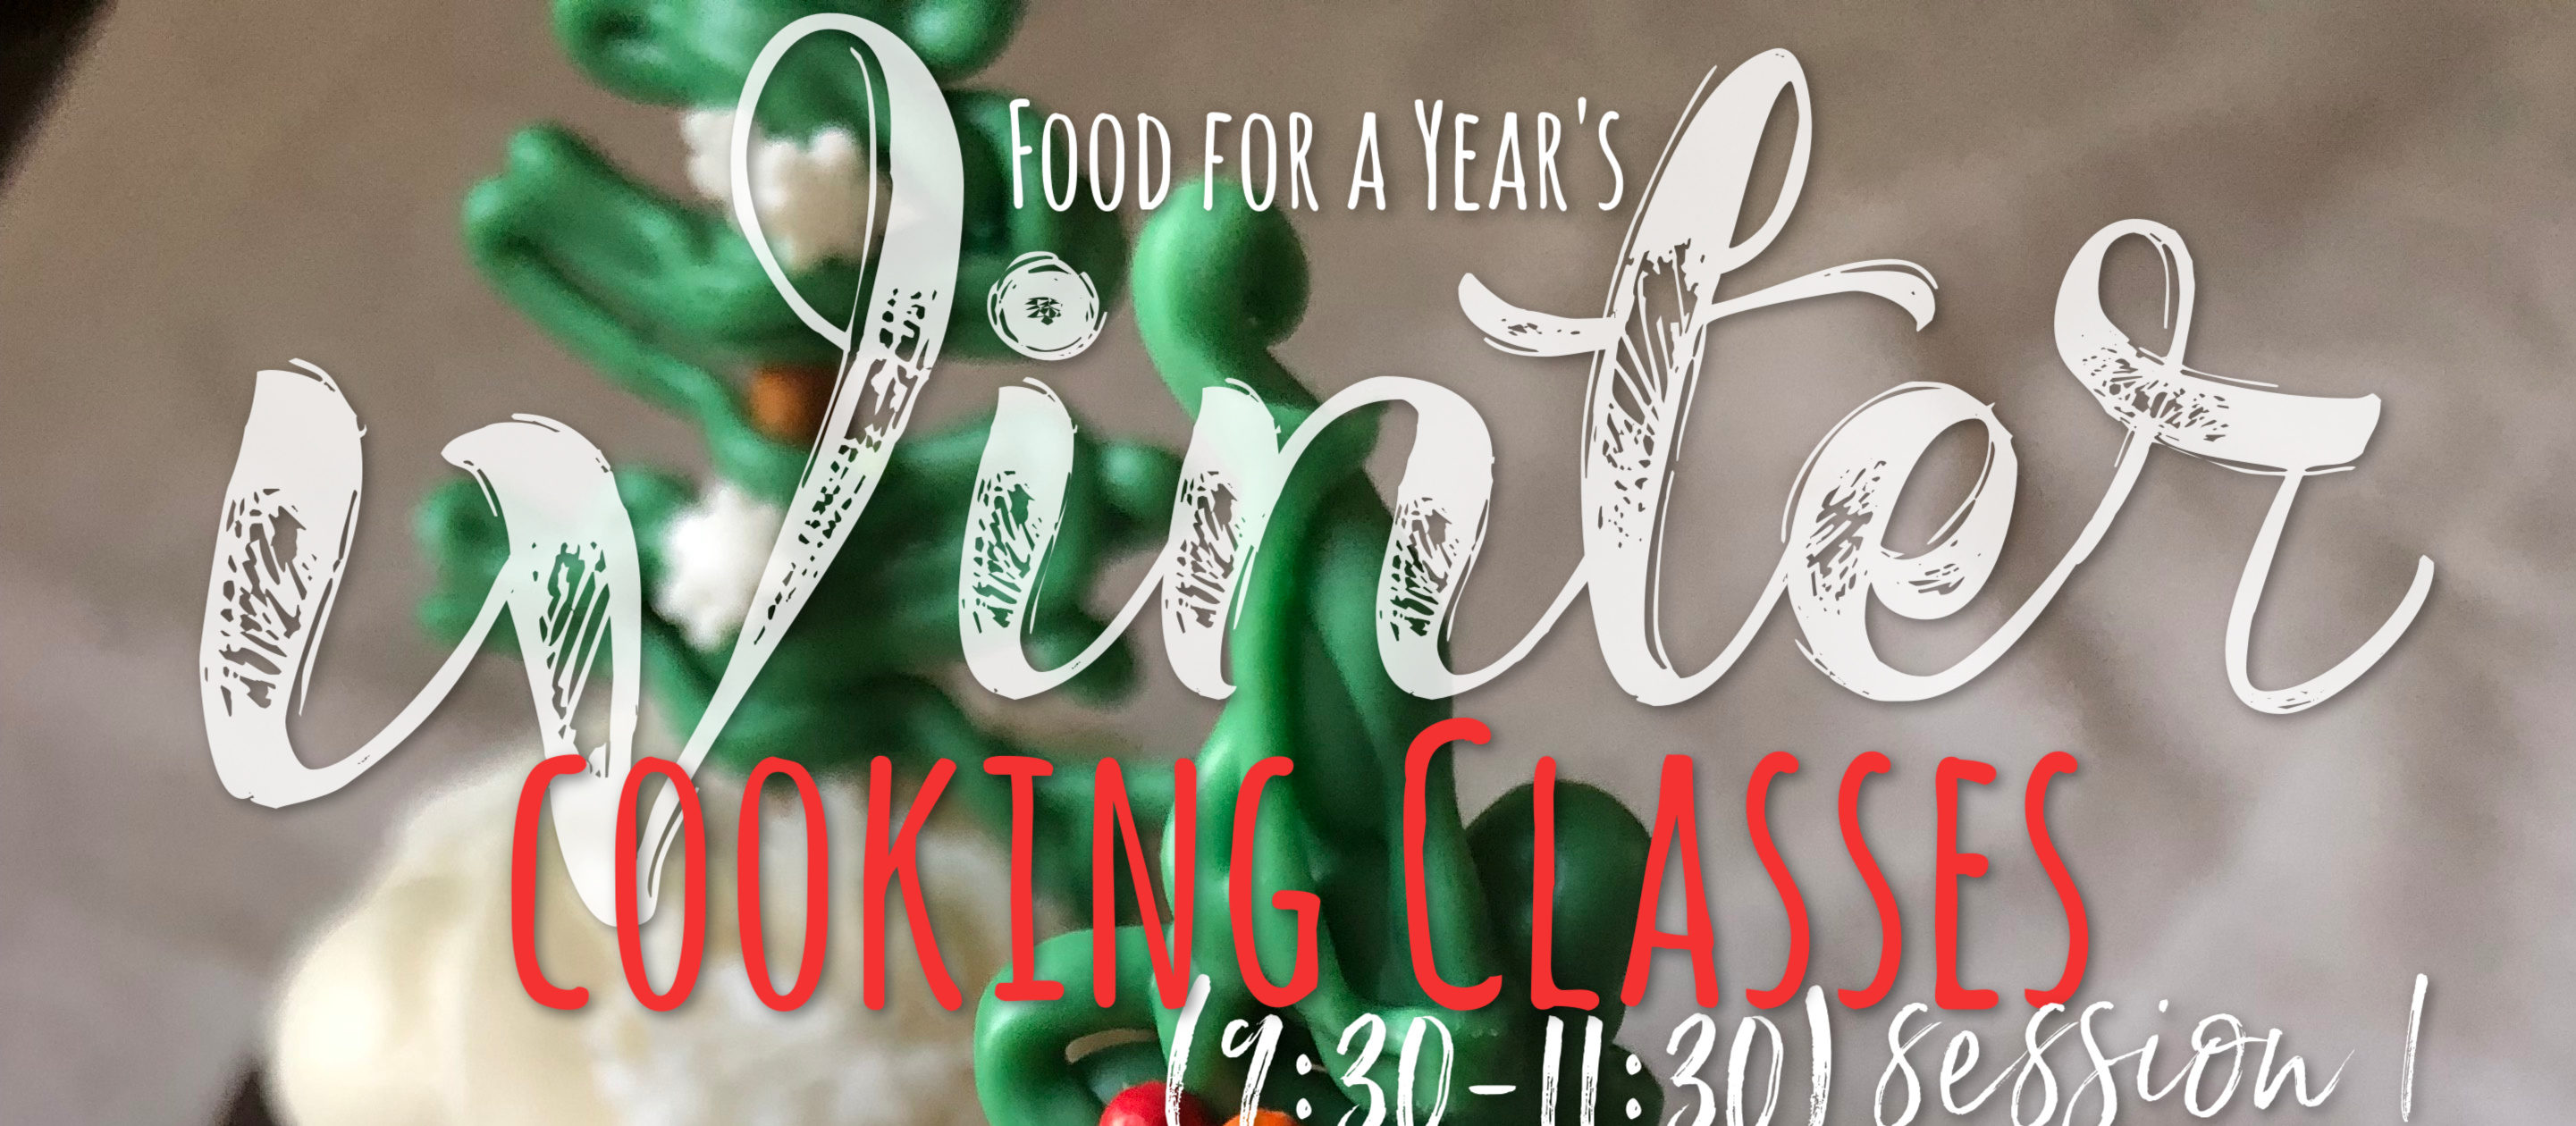 Winter 2018 Cooking Class Schedule – Session 1